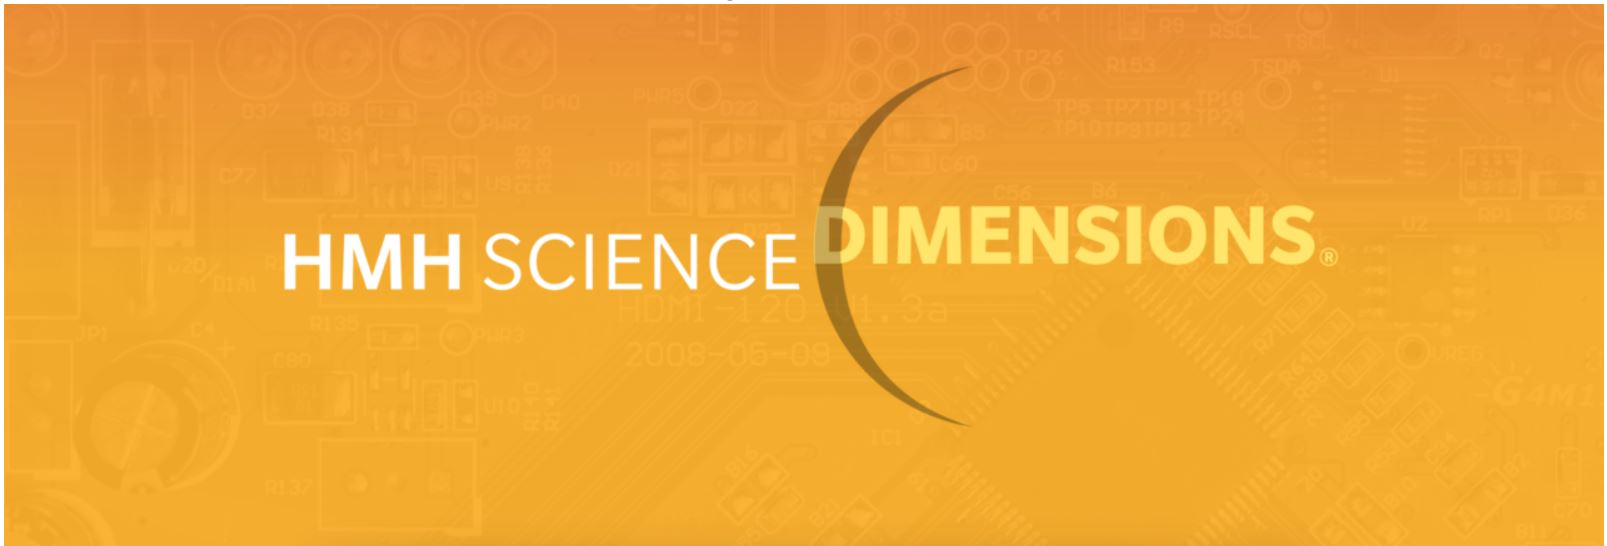 science-dimensions-large-banner.jpg